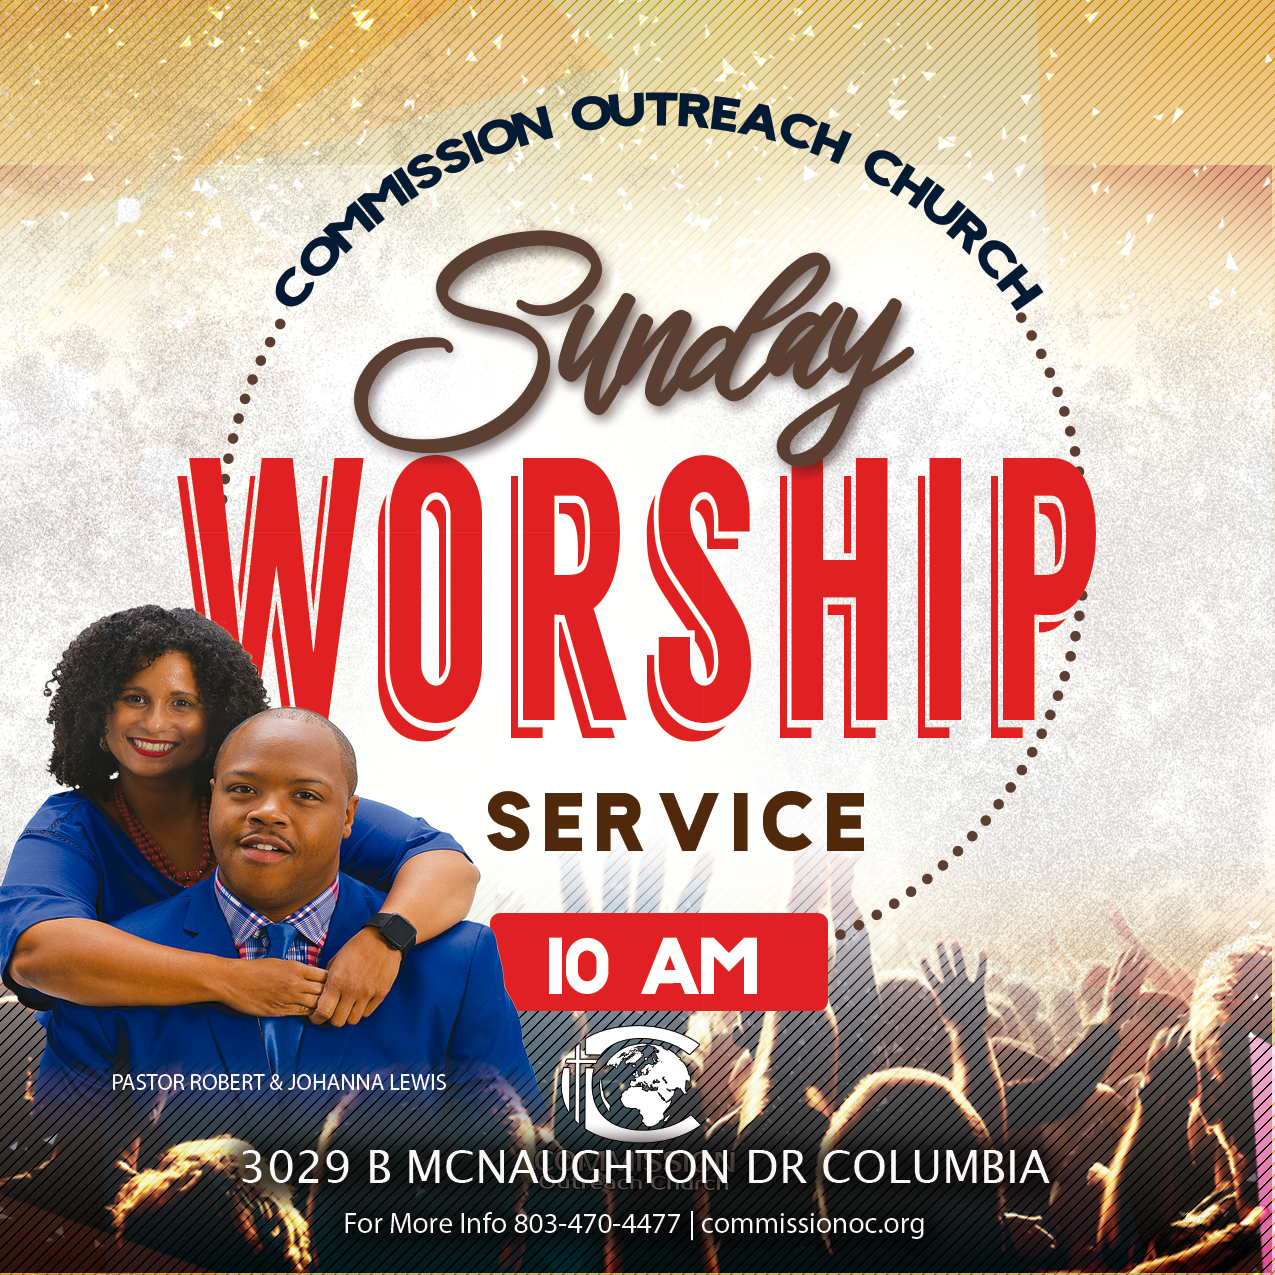 Sunday Worship Service 10 am